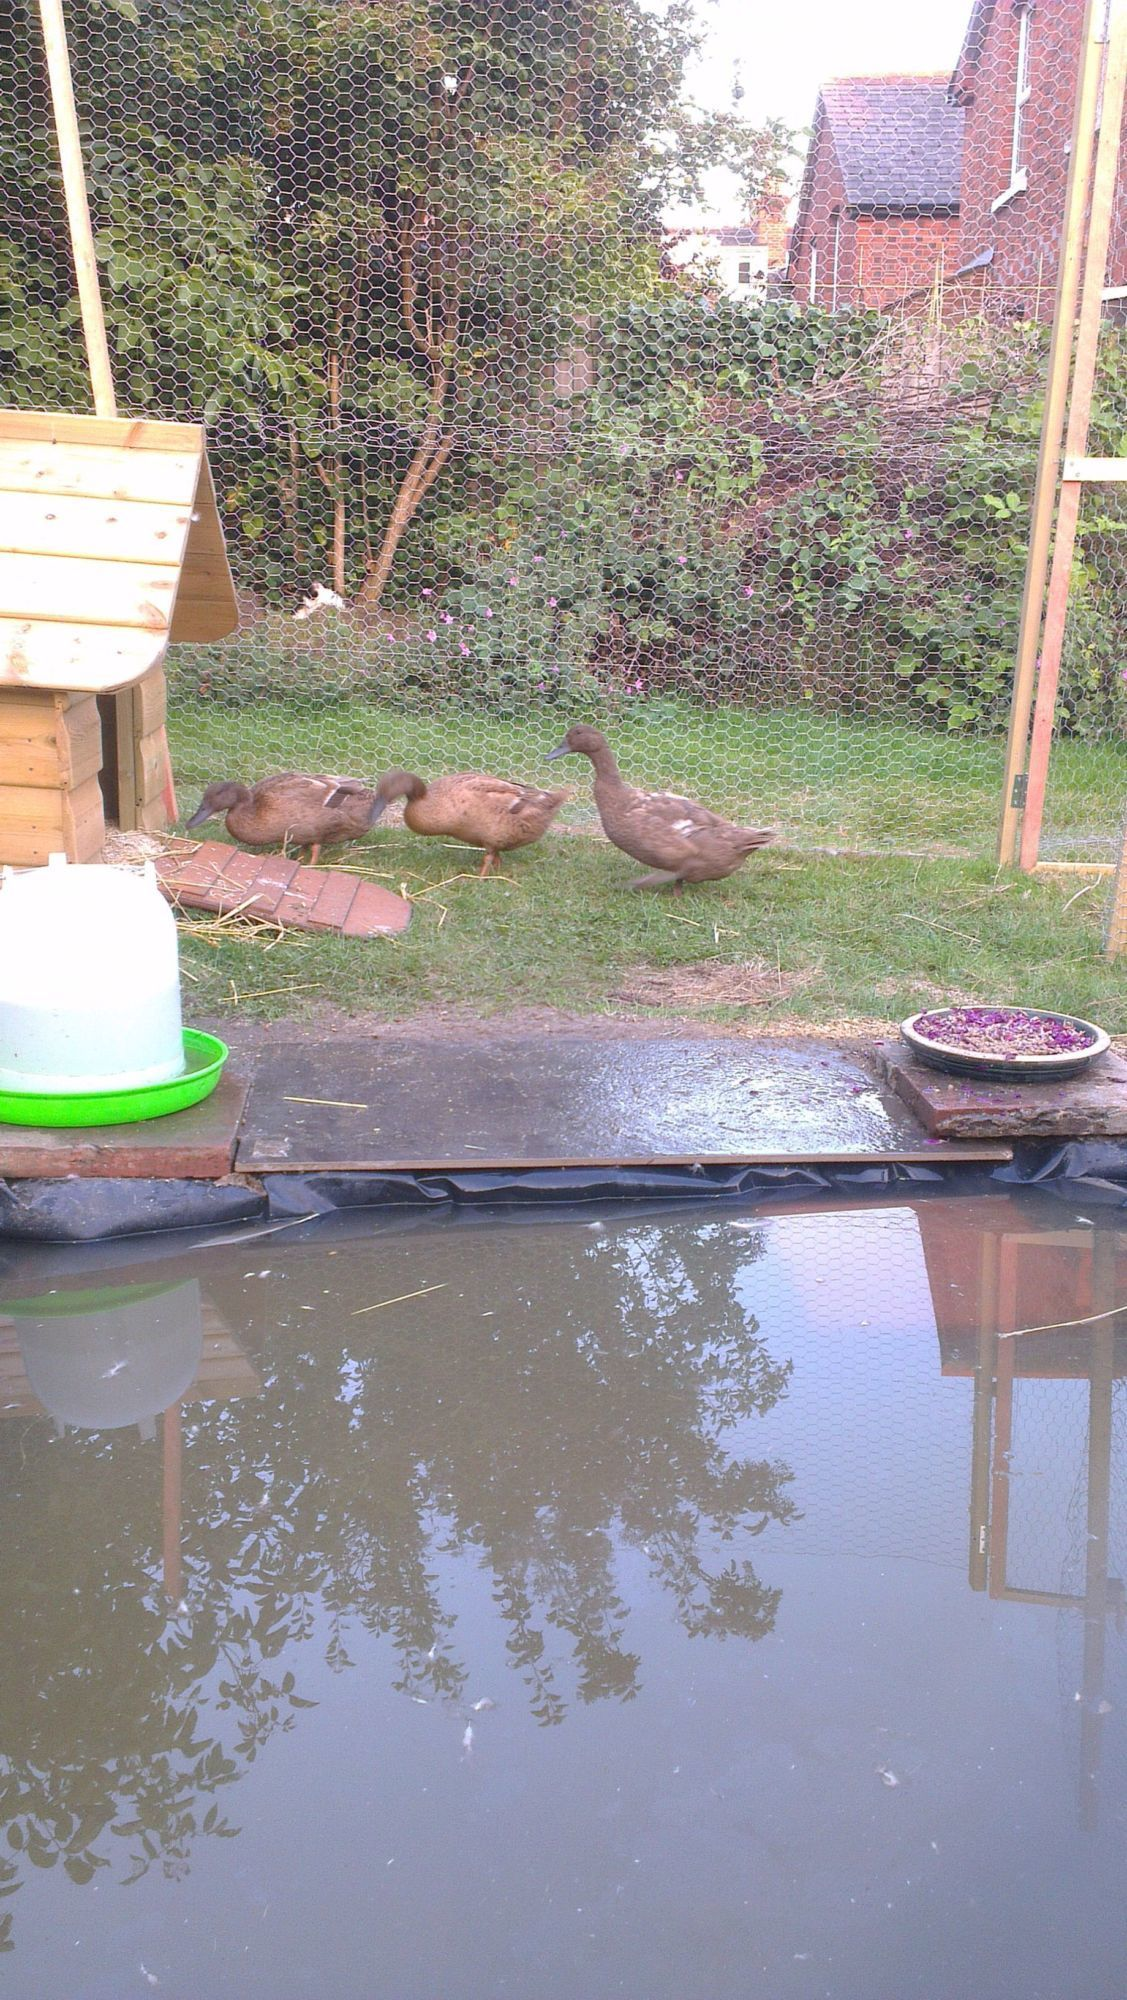 Any ideas how to keep duck ponds clean without major costs